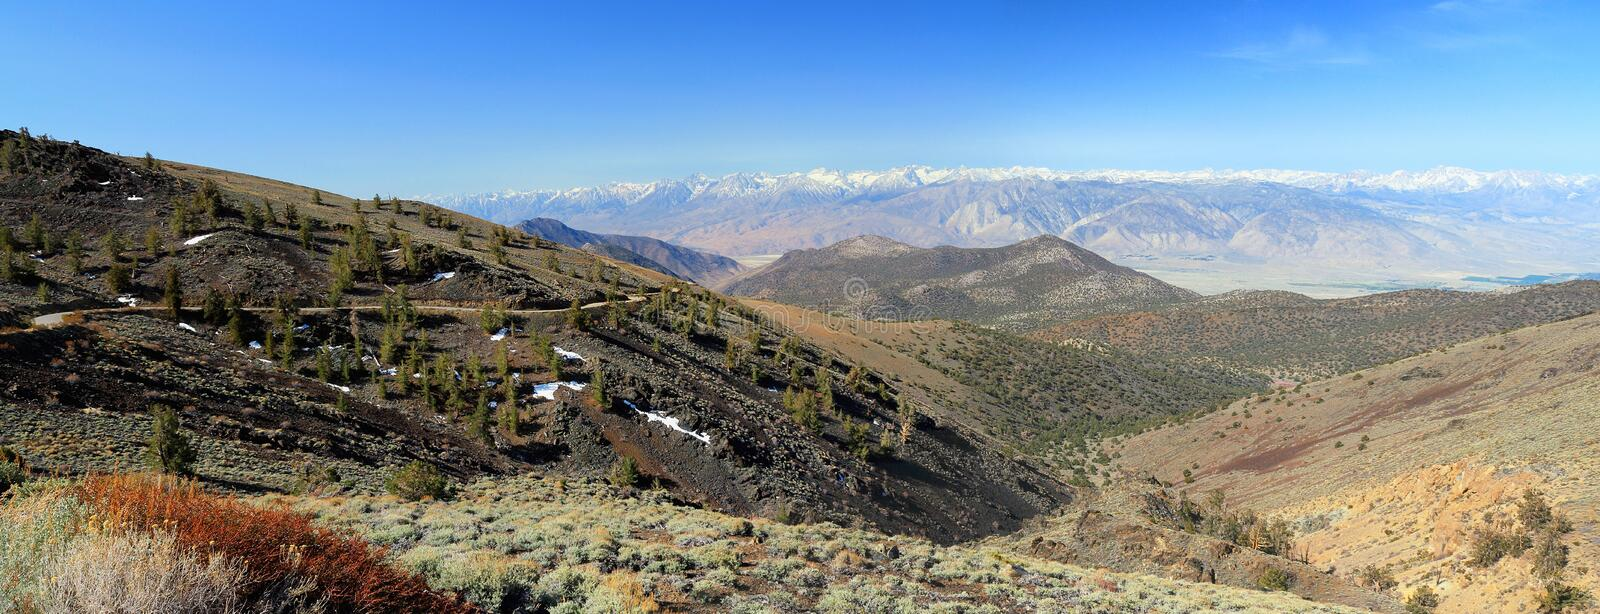 White Mountain Road and Sierra Nevada, California, Panorama stock photo